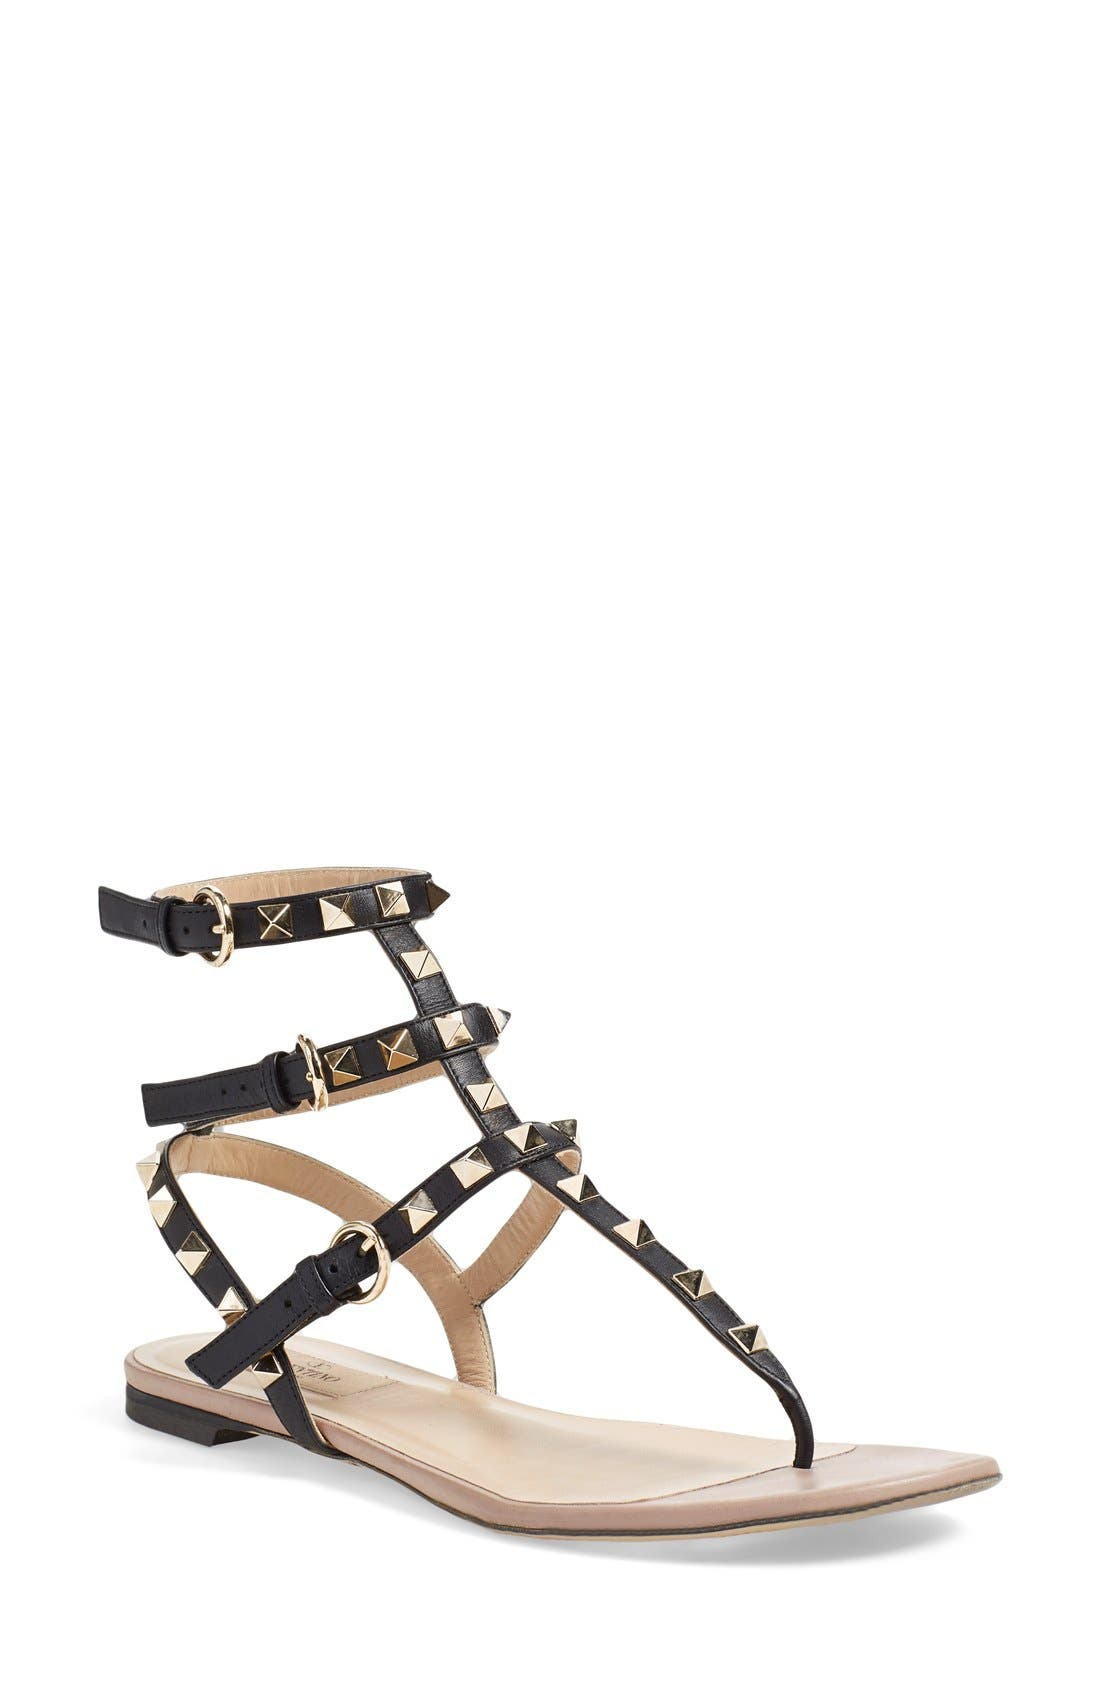 'Rockstud' Sandal,                             Main thumbnail 1, color,                             BLACK LEATHER